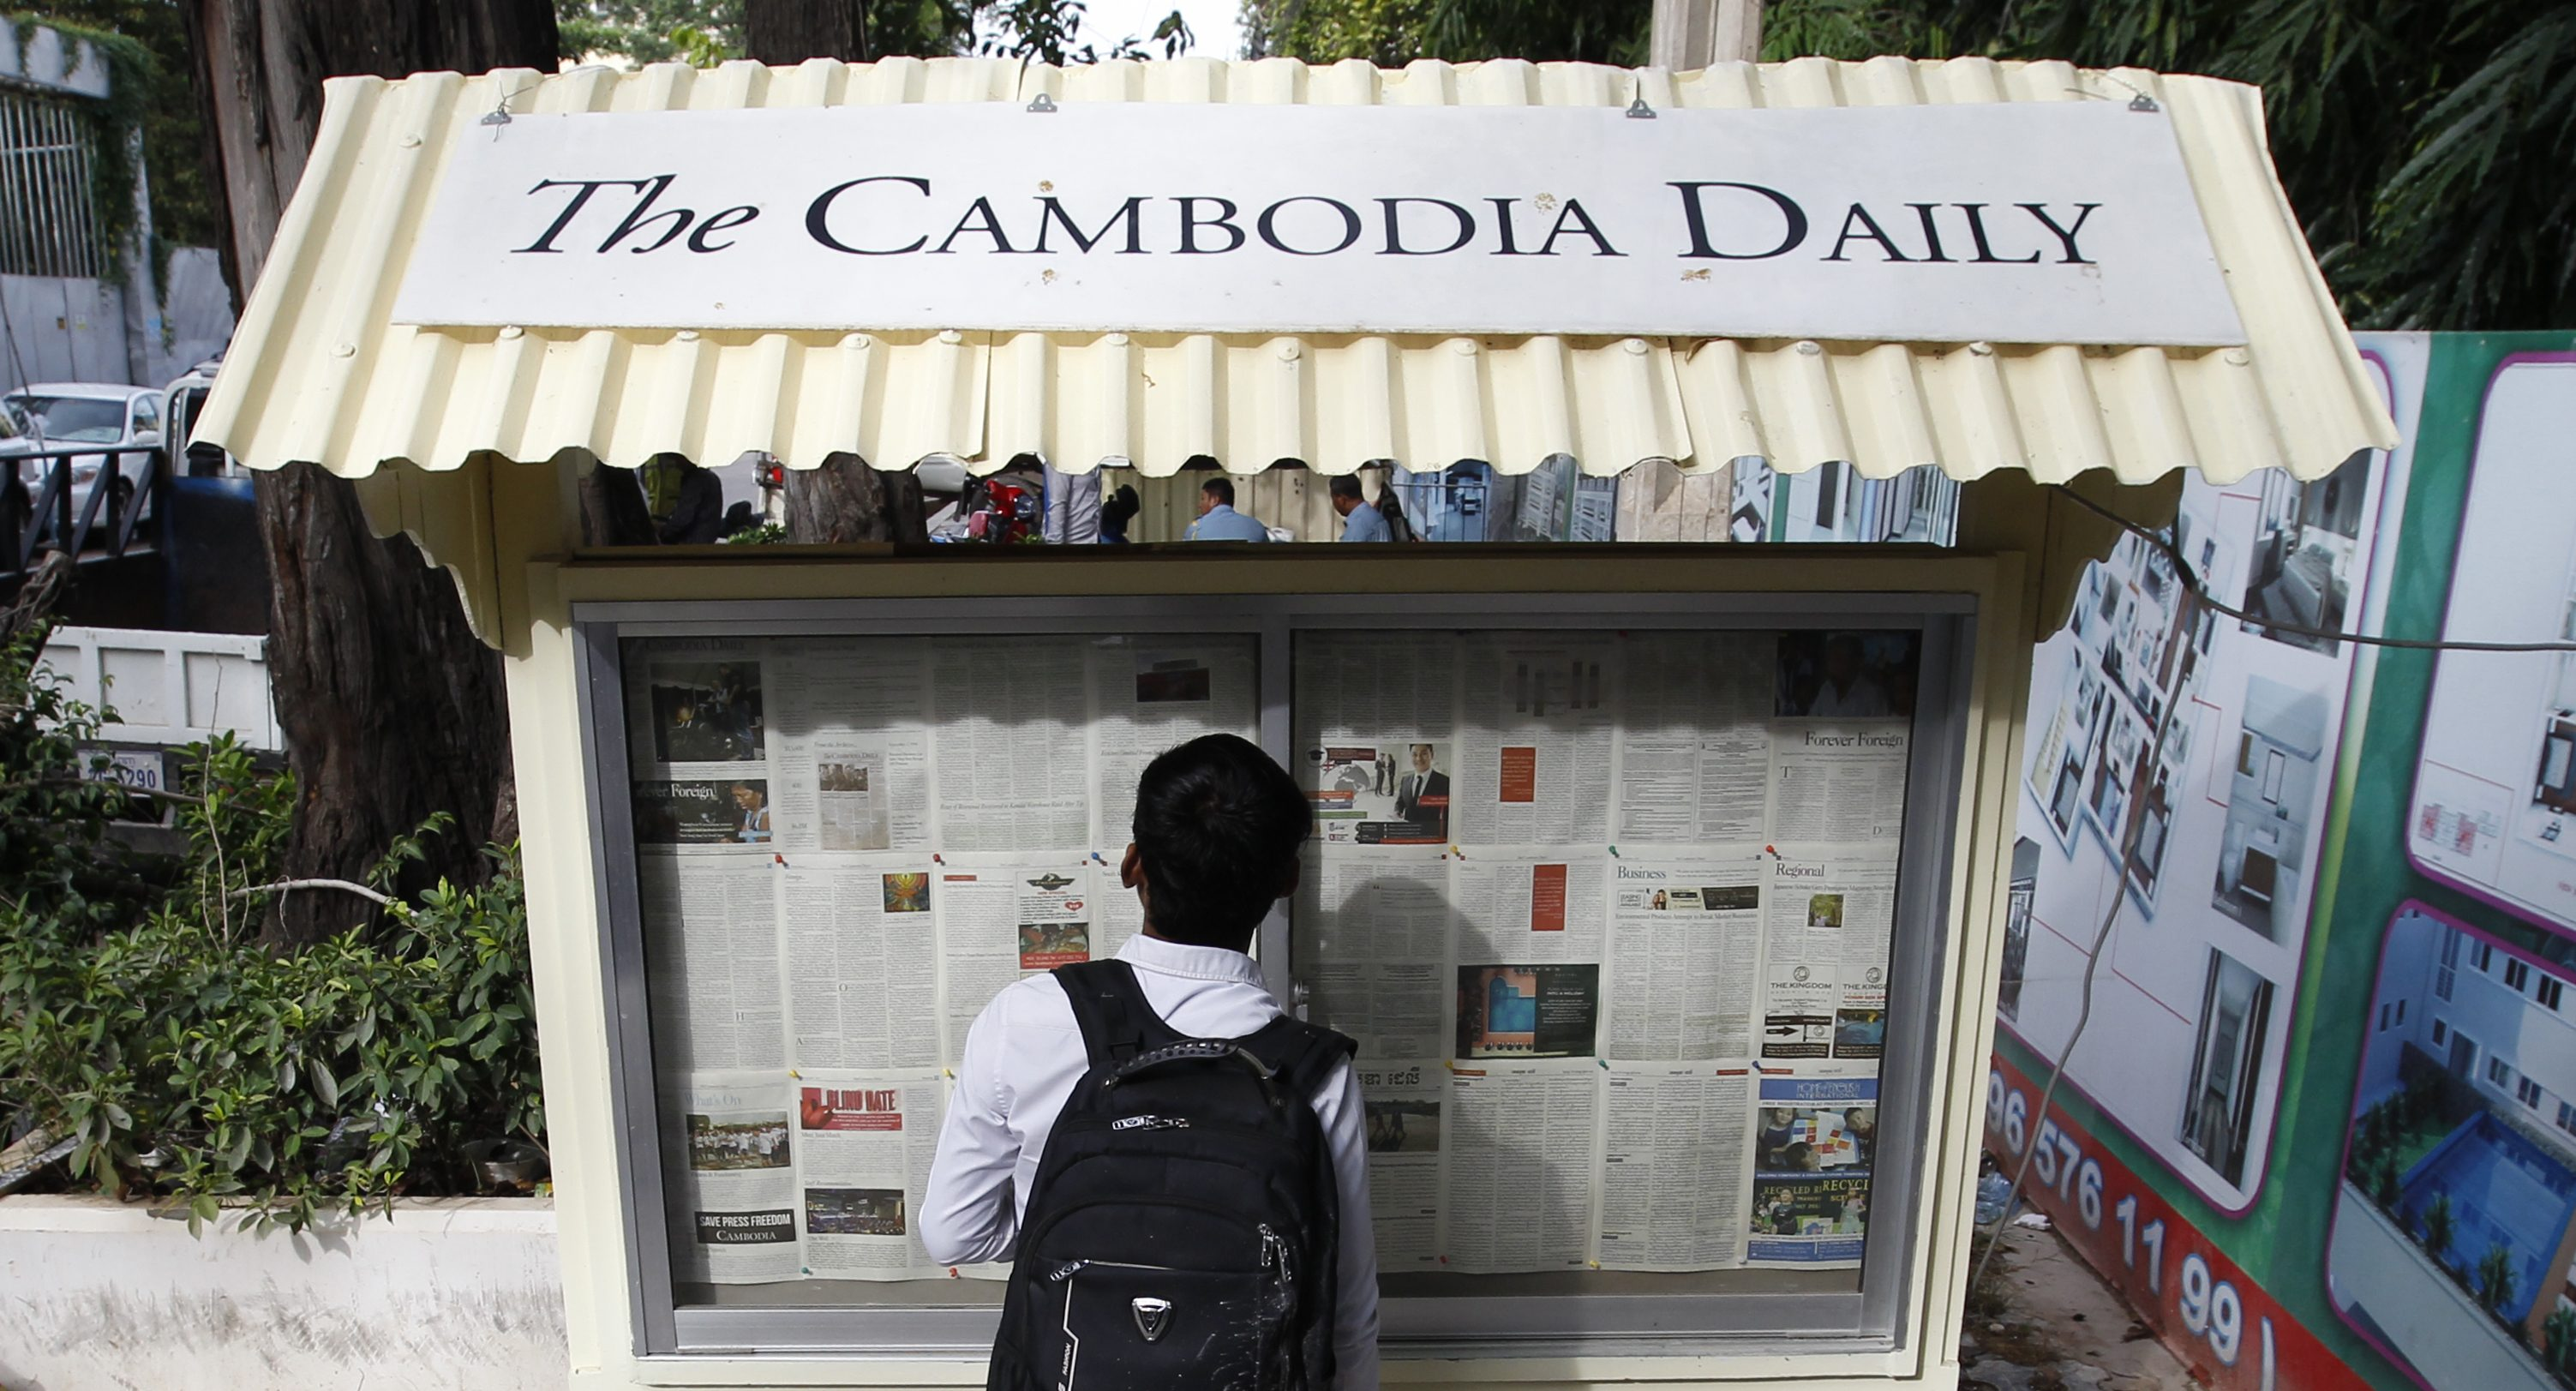 Government closes the Cambodia Daily Newspaper